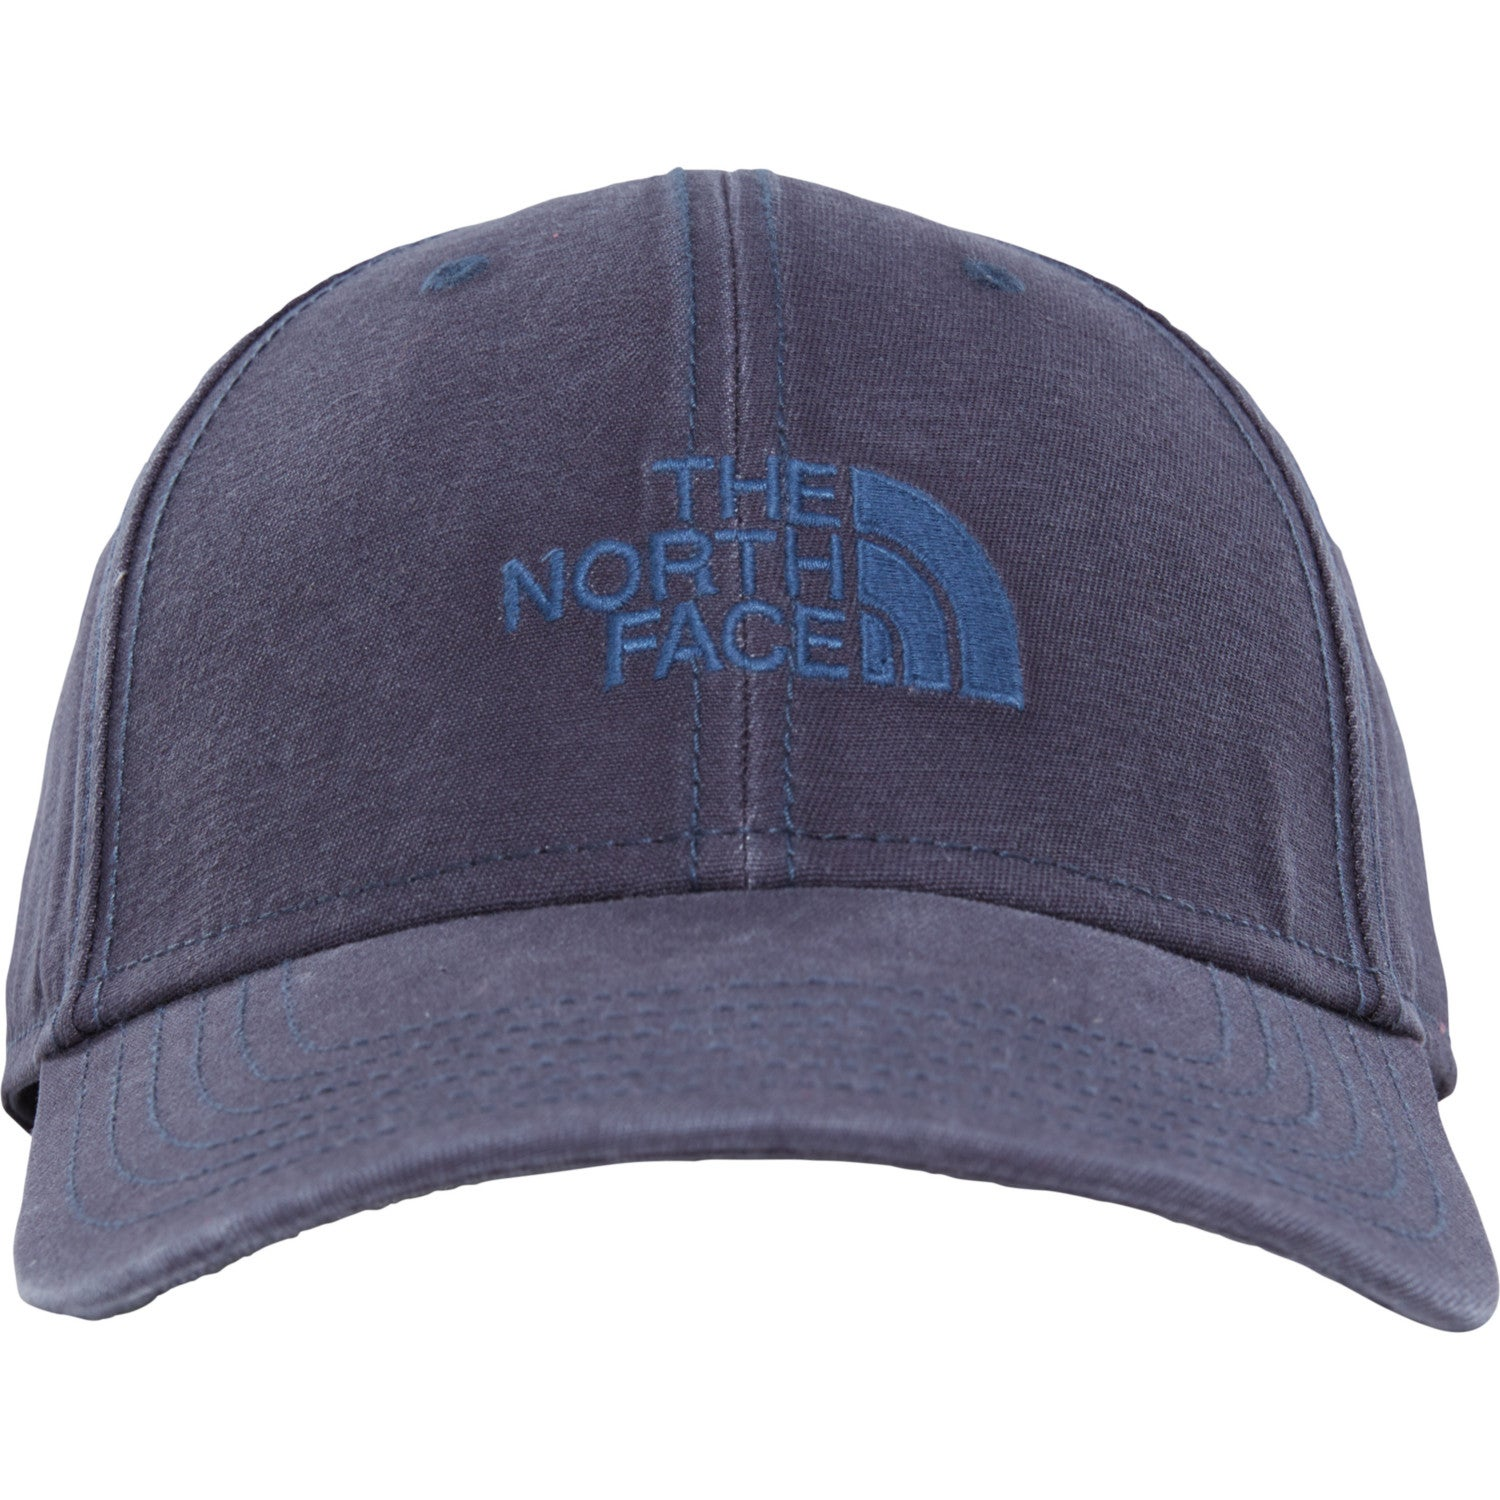 c203284ad91d5 The North Face 66 Classic Mens Headwear Cap - Urban Navy One Size